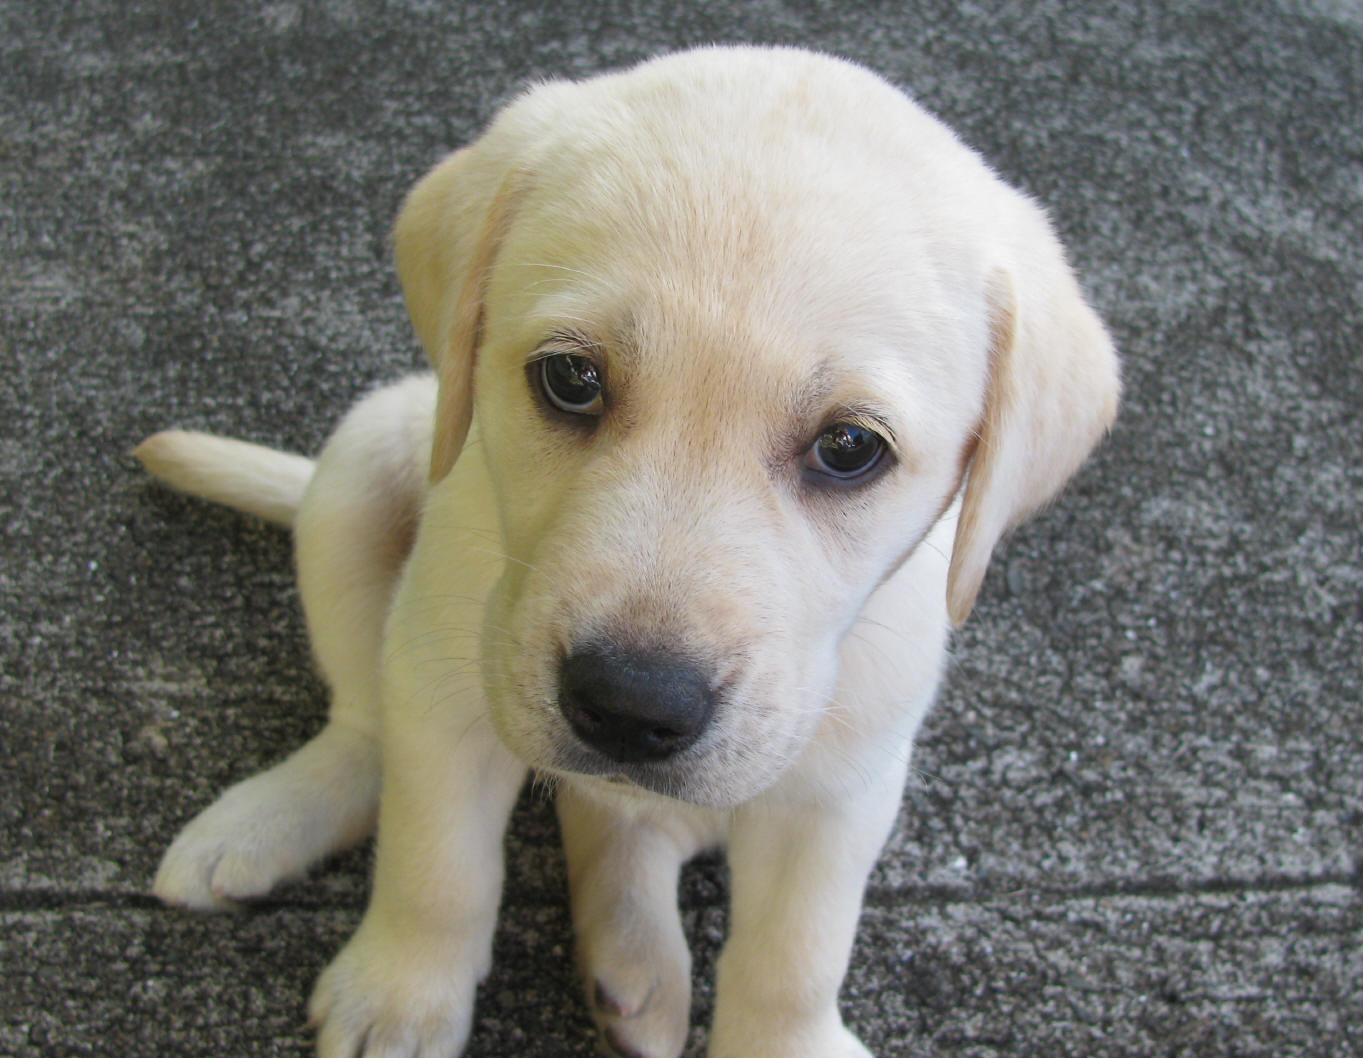 Free download 922026 Yellow Labrador Retriever Puppies 922068 Yellow